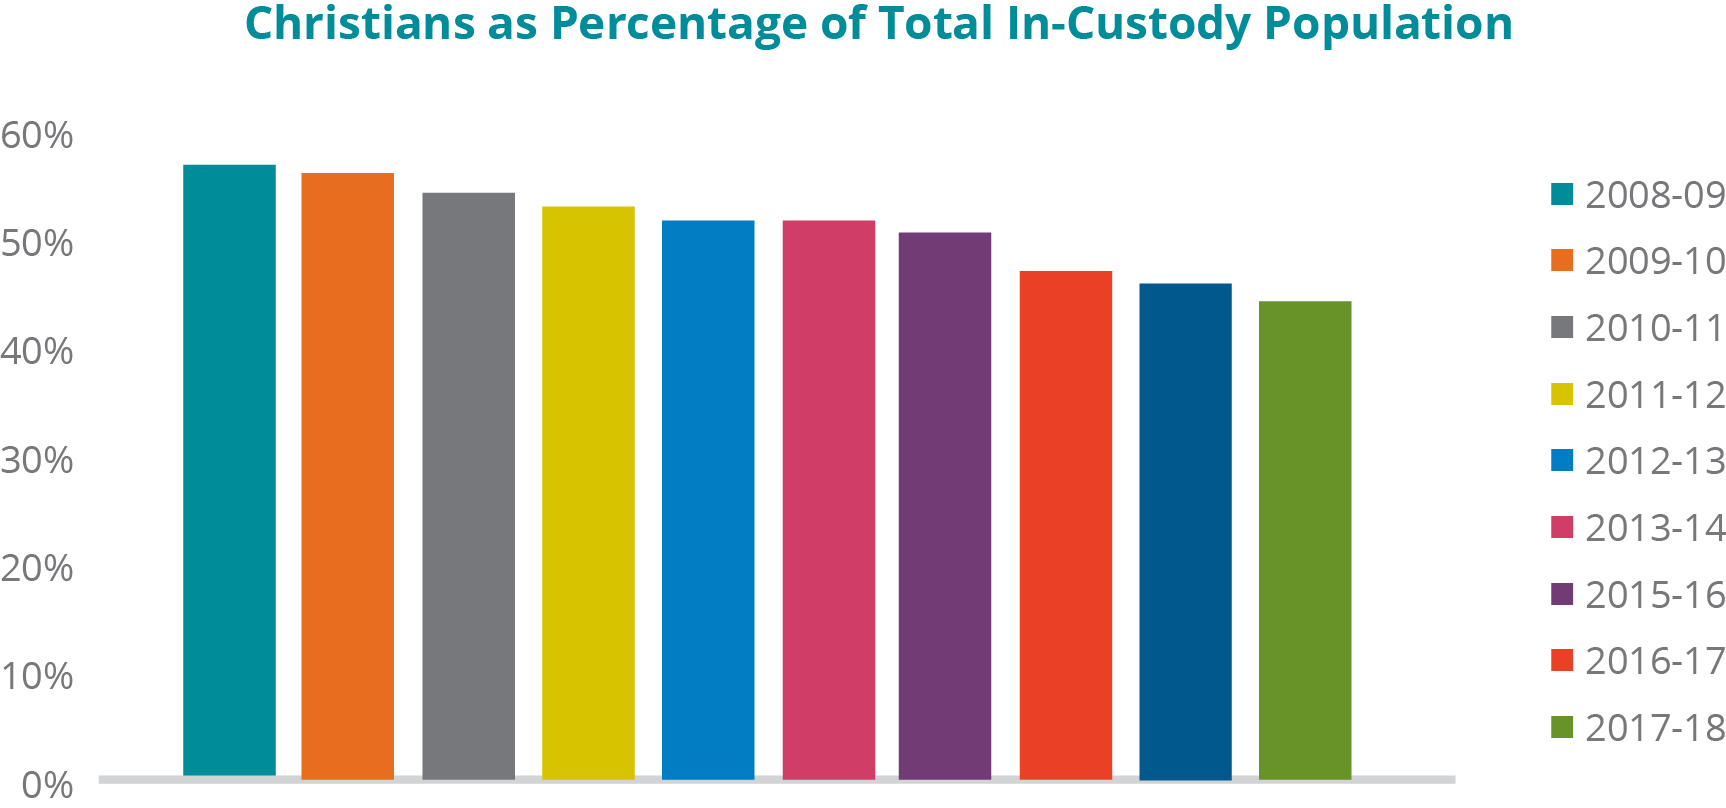 A graph depicting the percentage of the total in-custody population who self-report as Christian, from reporting year 2008-09 to 2018-19: - In 2008-09, 59.08%; 2009-10, 57.89%; 2010-11, 56.58%; 2011-12, 54.86%; 2012-13, 53.86%; 2013-14, 53.88%; 2015-16, 52.51%; 2016-17, 48.99%; 2017-18, 47.74%; and 2018-19, 45.91%.